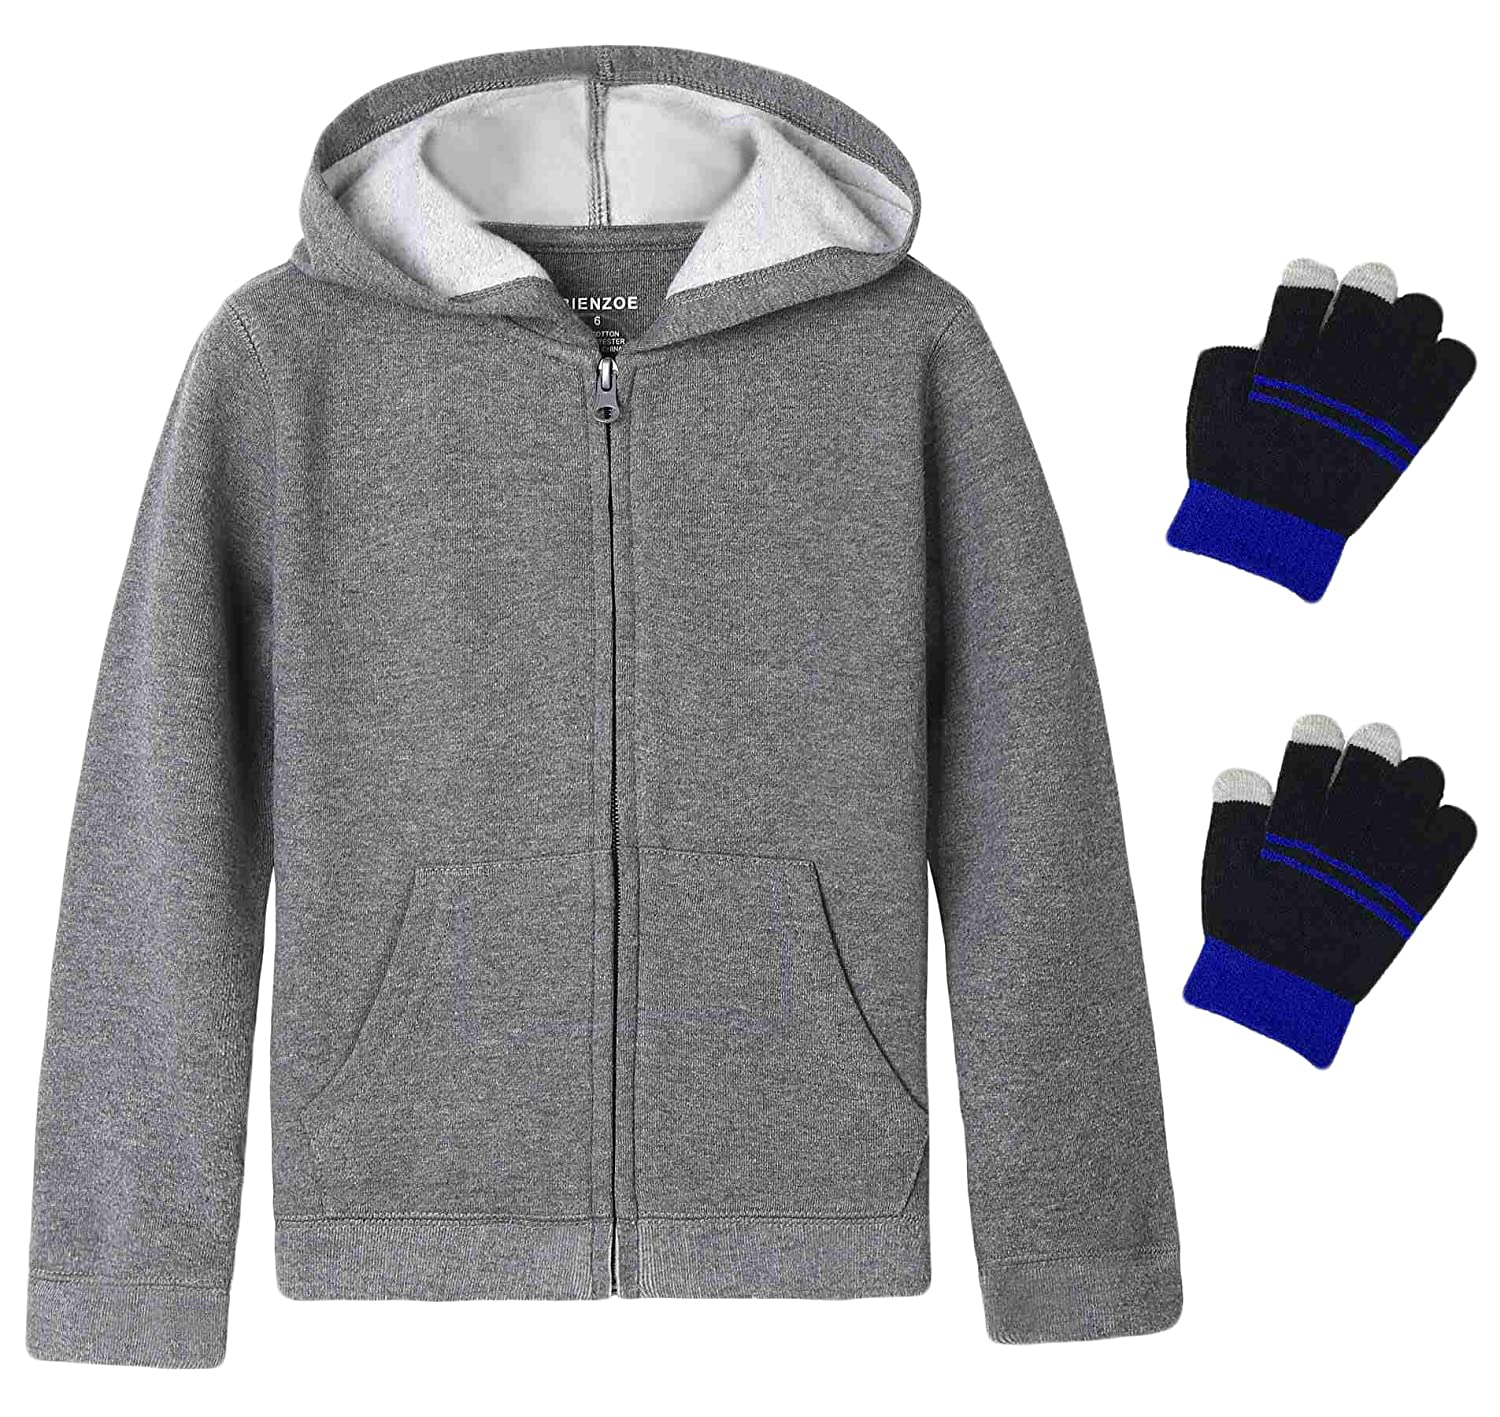 Bienzoe Boy's Anti-Pilling Fleece School Uniform Hoodie with Free Glove Gift